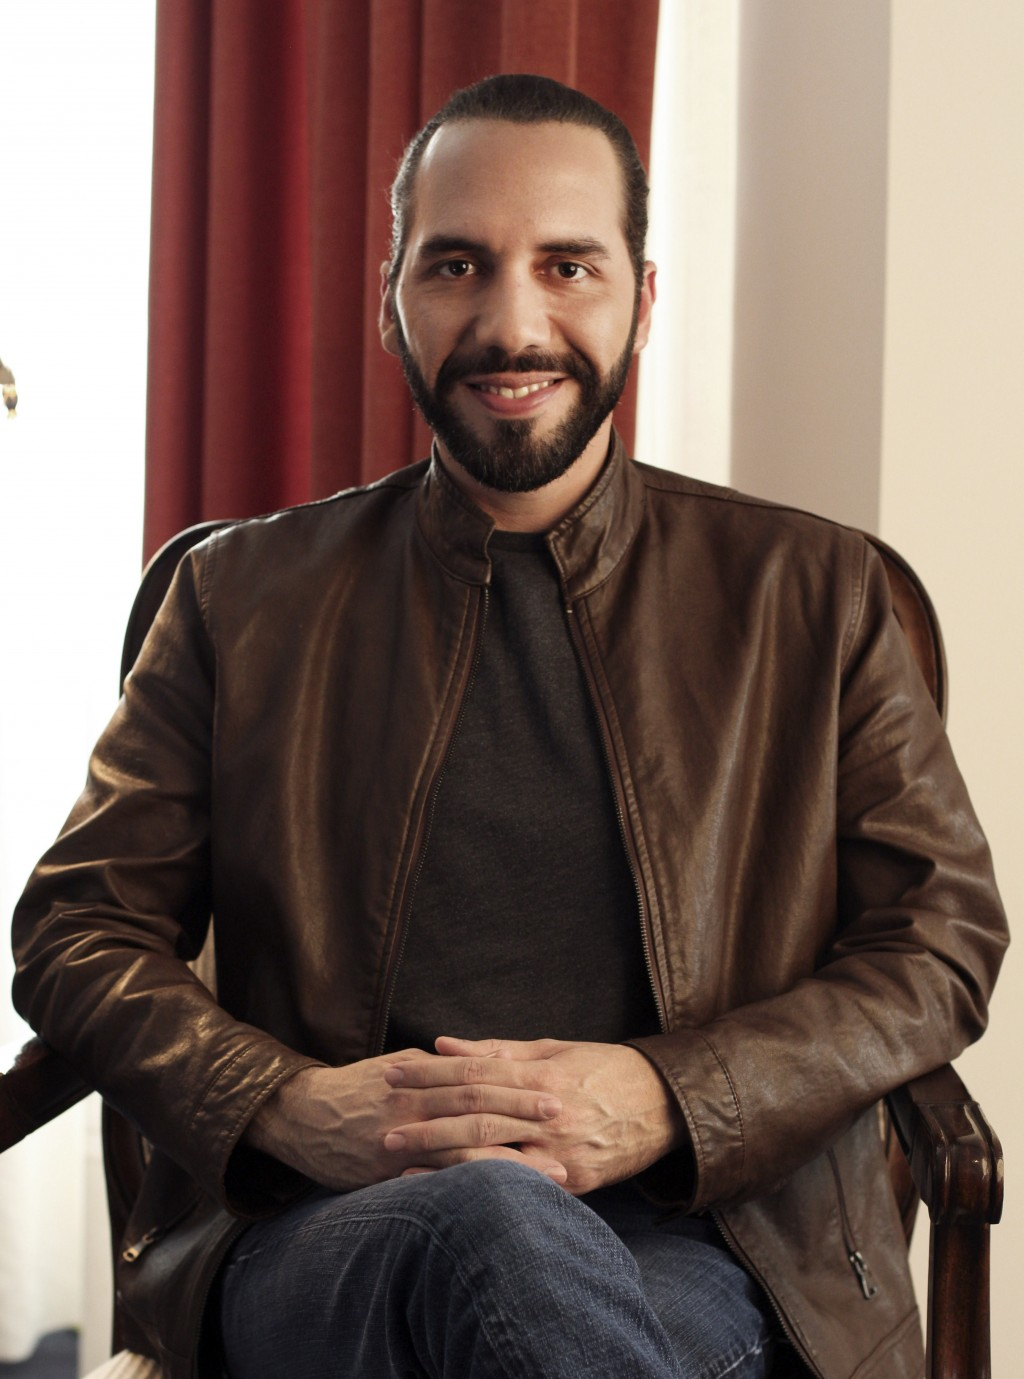 Salvadoran President-elect Nayib Bukele, poses for a photo during an interview with The Associated Press in San Salvador, El Salvador, Tuesday, Feb. 1